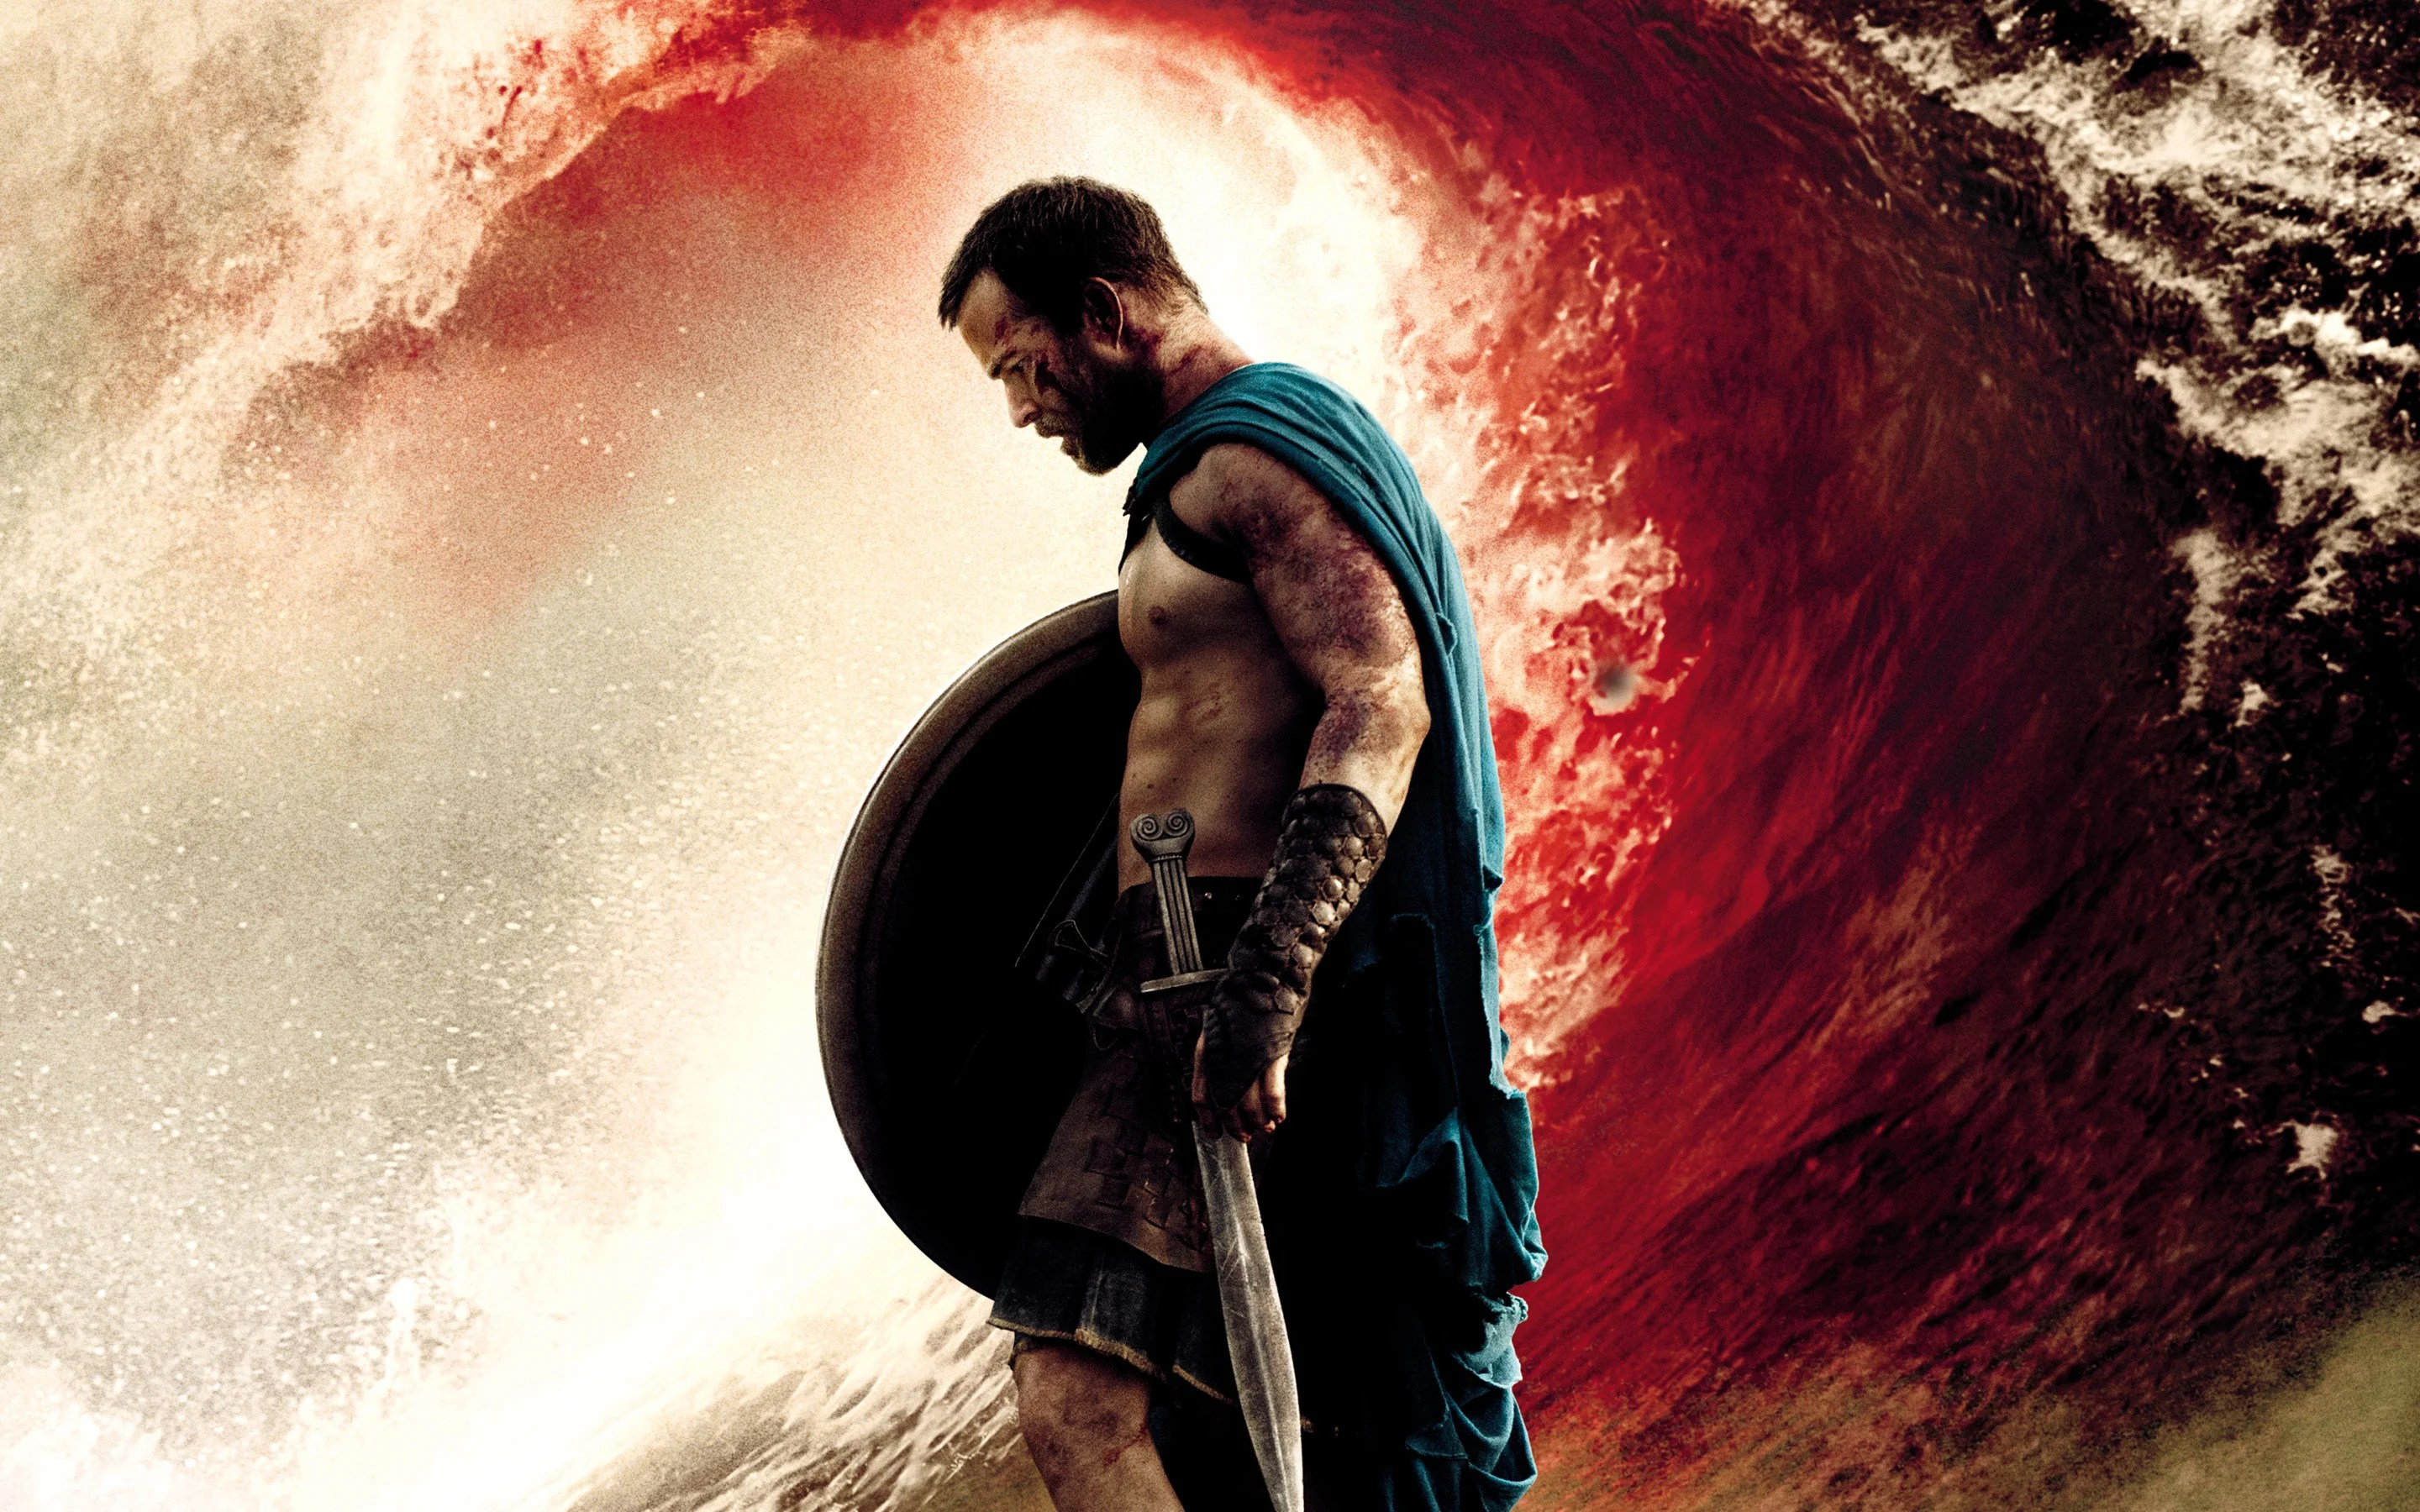 The 300 sequel is Zack Snyder's greatest intellectual masterpiece